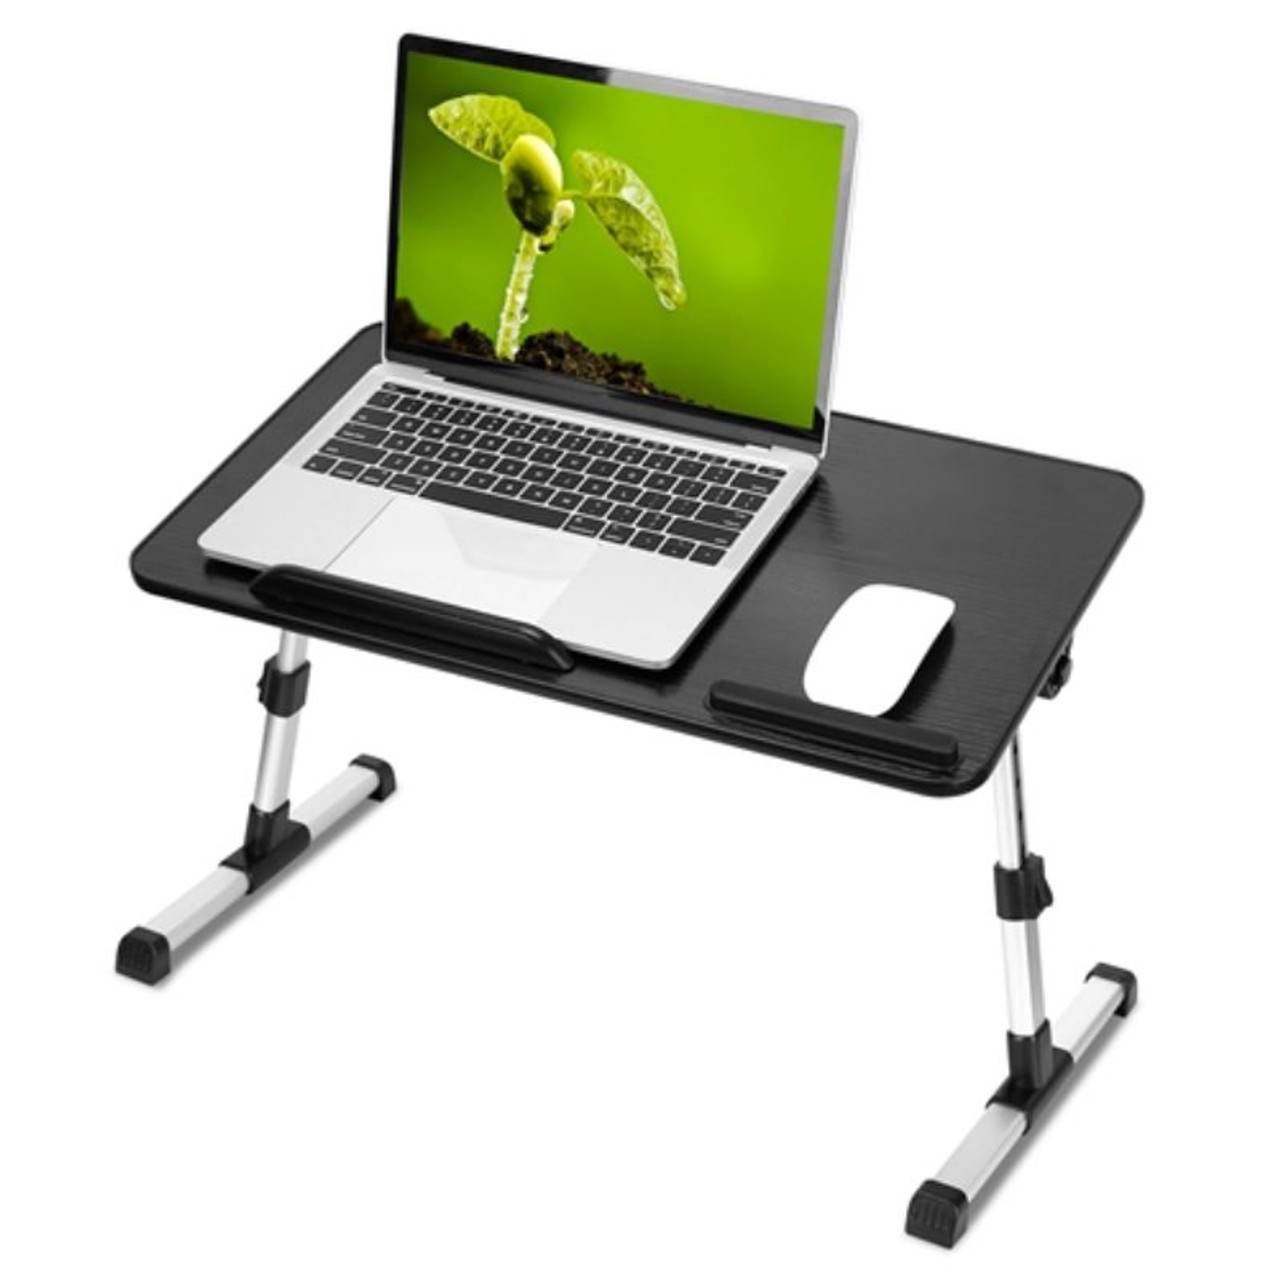 Foldable Height and Angle Adjustable Laptop or Bed Stand